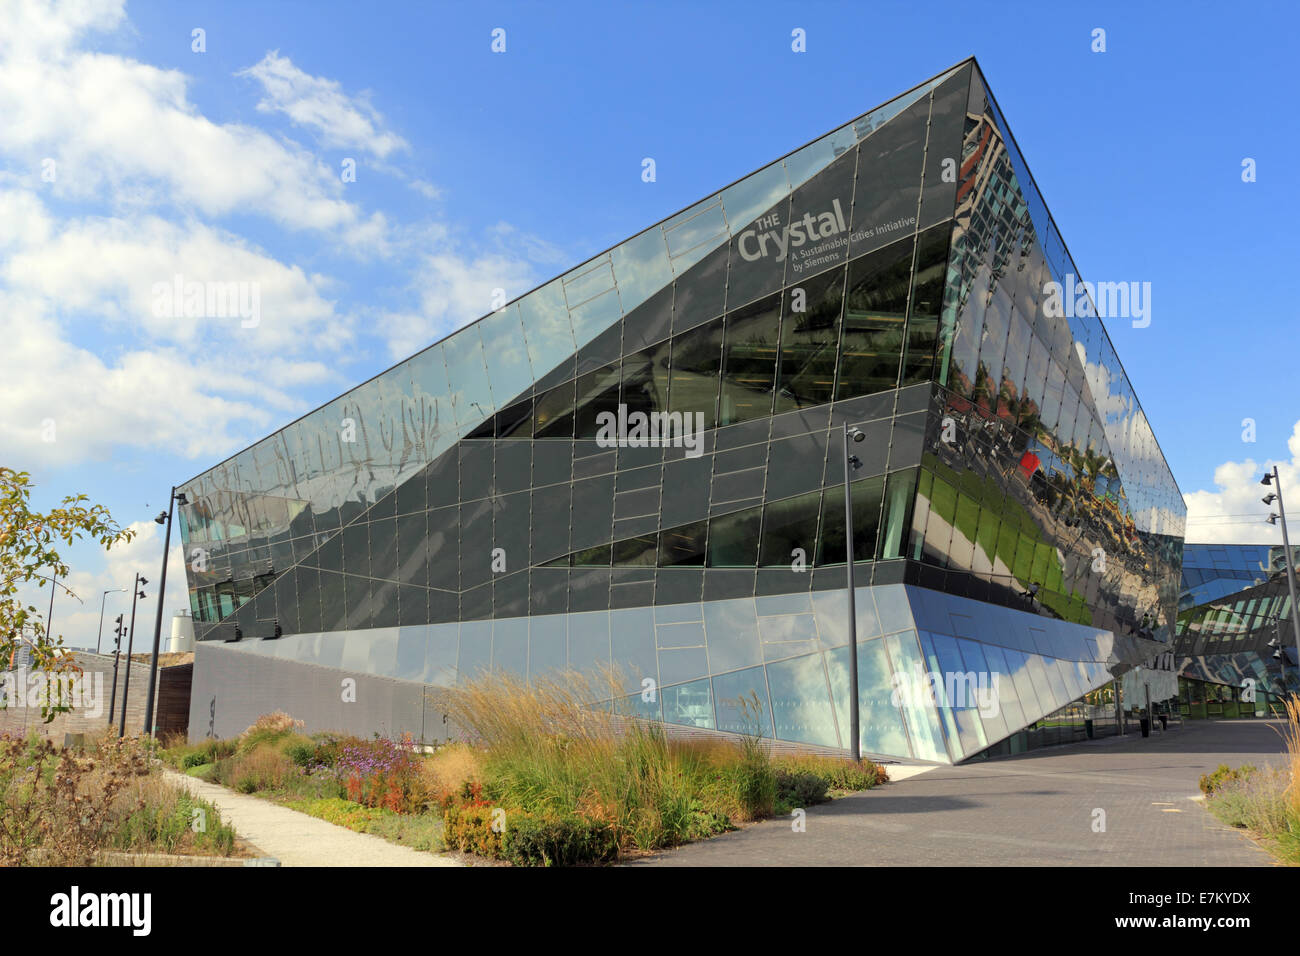 The Crystal sustainable development exhibition building on Royal Victoria Dock in east London, England, UK. - Stock Image